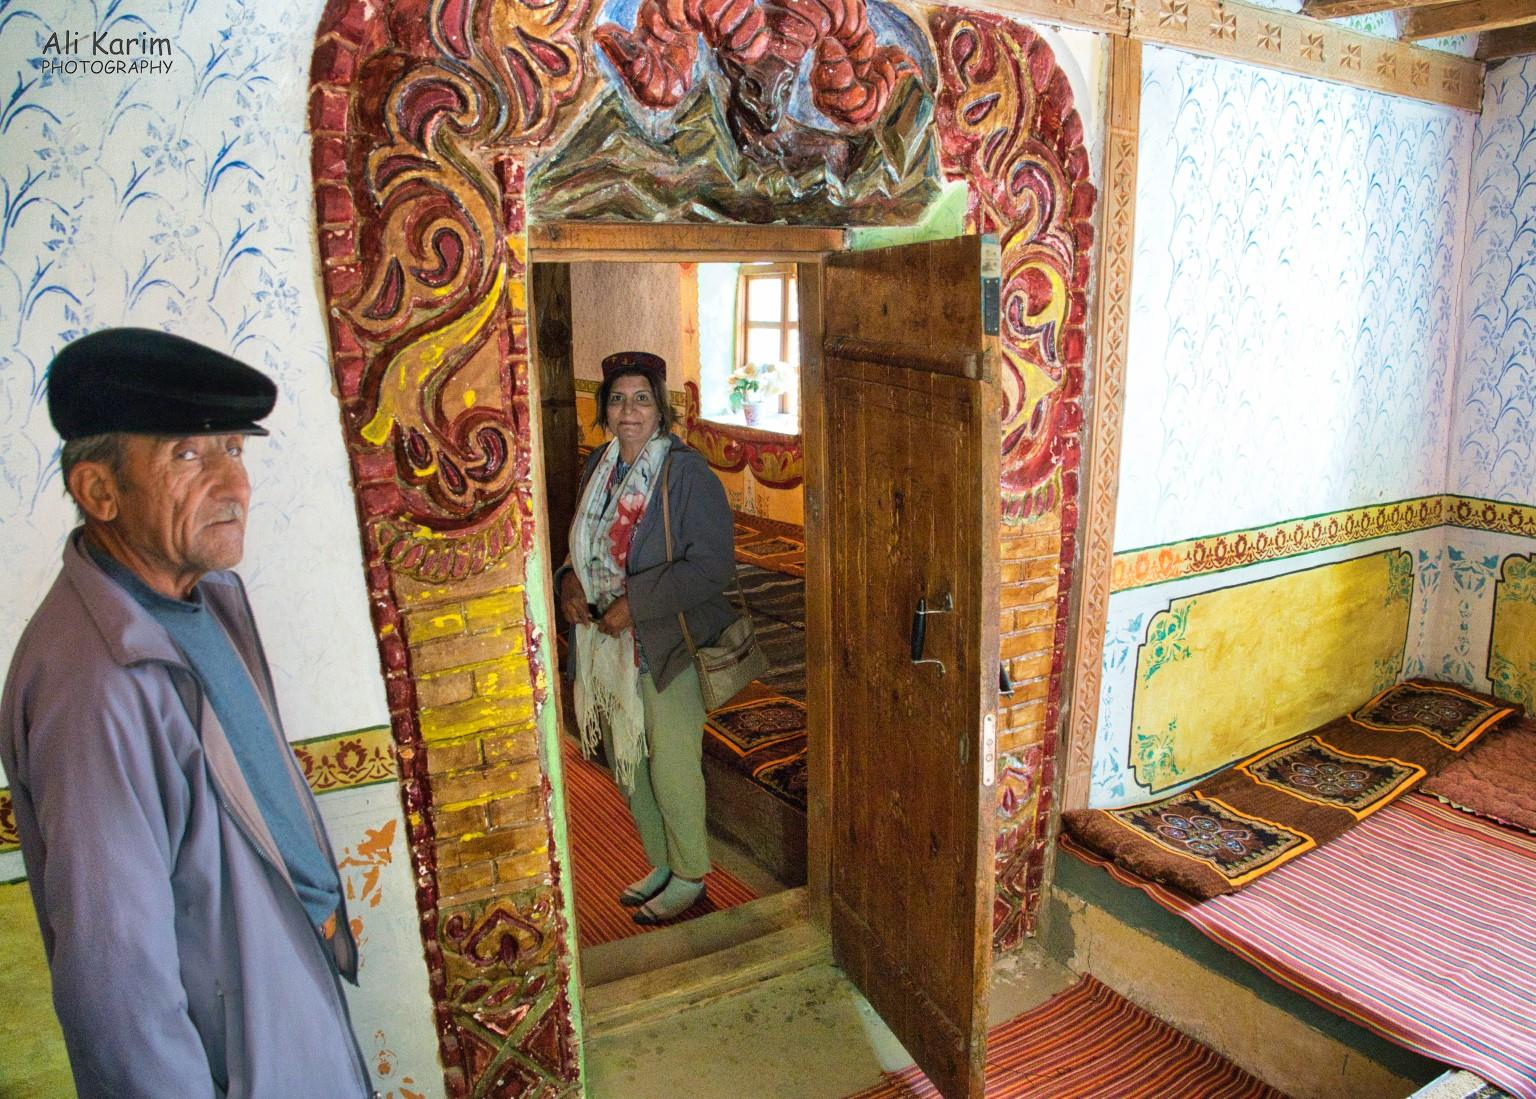 Langar, Bulunkul Tajikistan, Entrance to Prayer Hall from Museum; note the elaborate woodwork and the Marco Polo sheep carving/painting. With the Museum caretaker